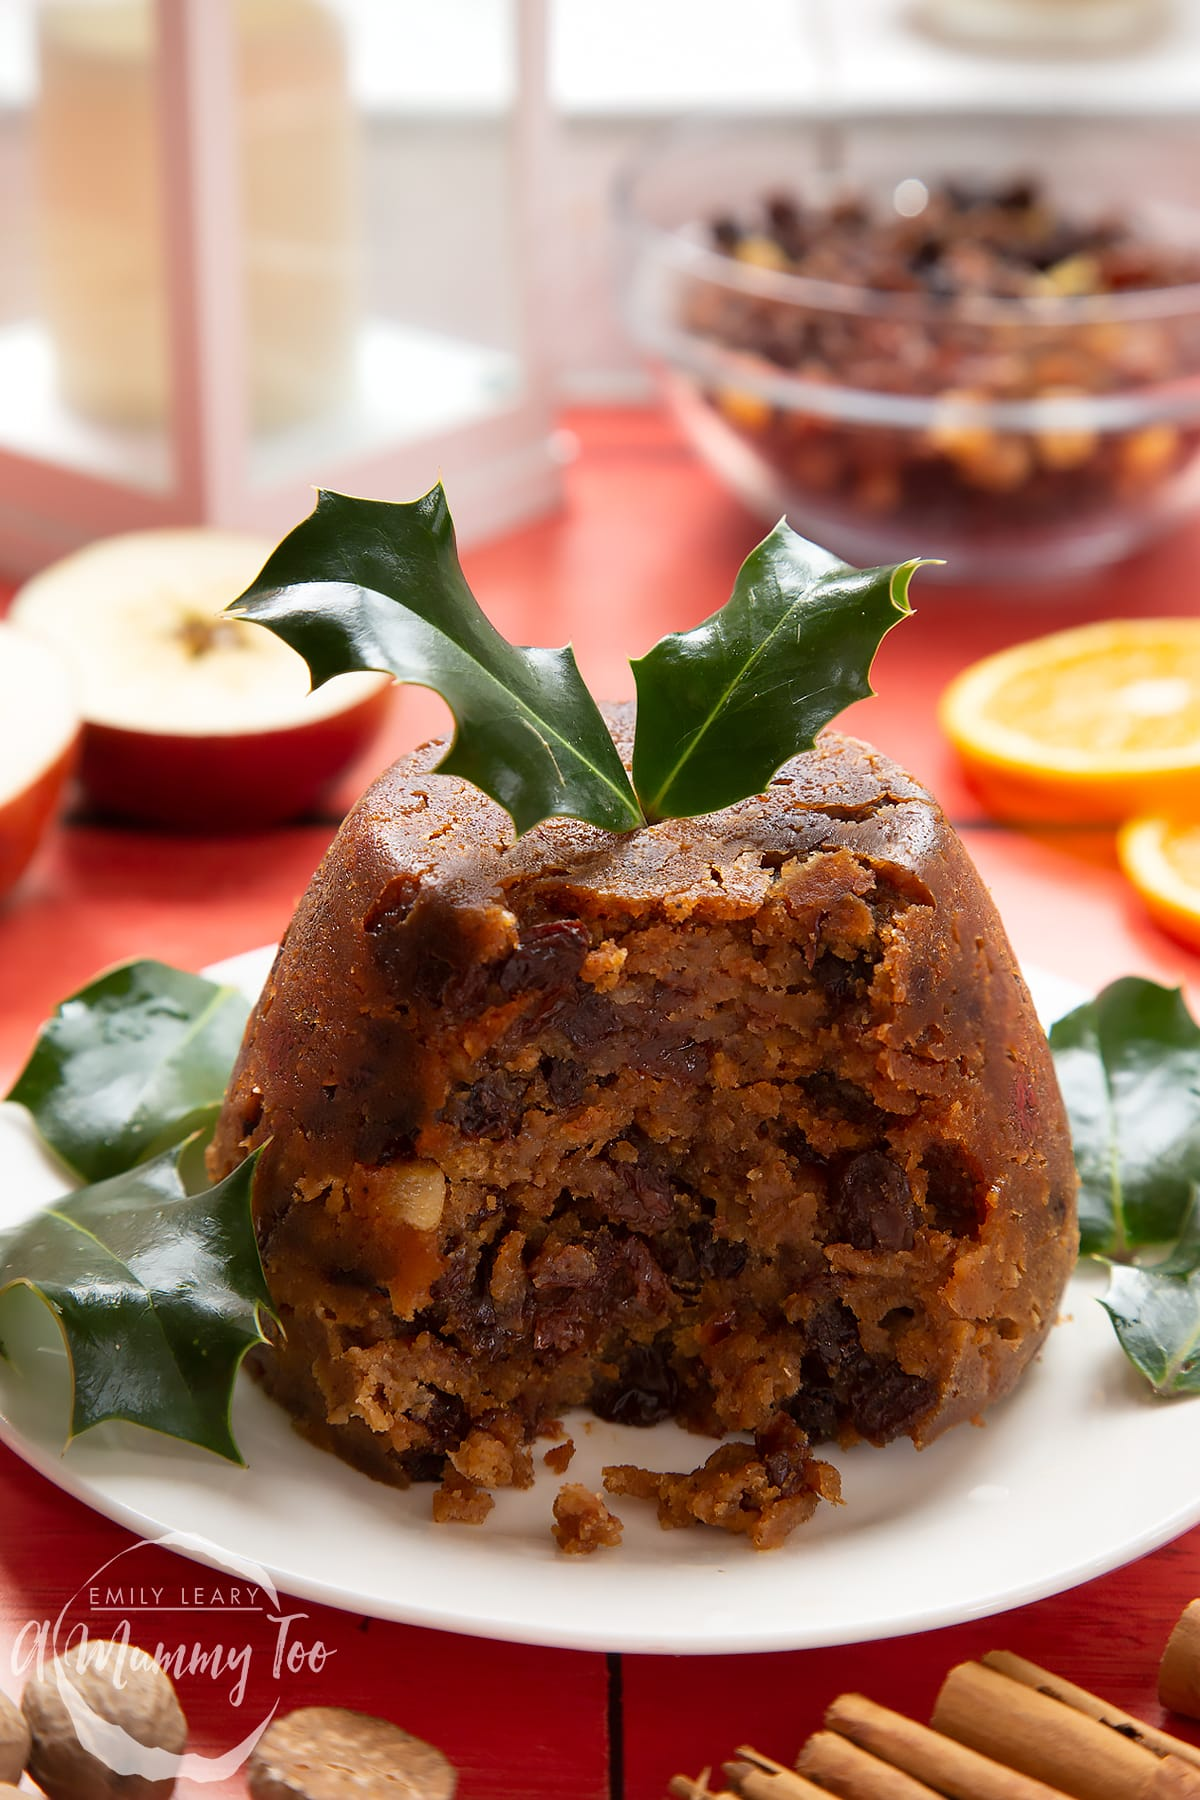 Front angle shot of half eaten Alcohol-free Christmas pudding served on a white plate with a mummy too logo in the lower-left corner